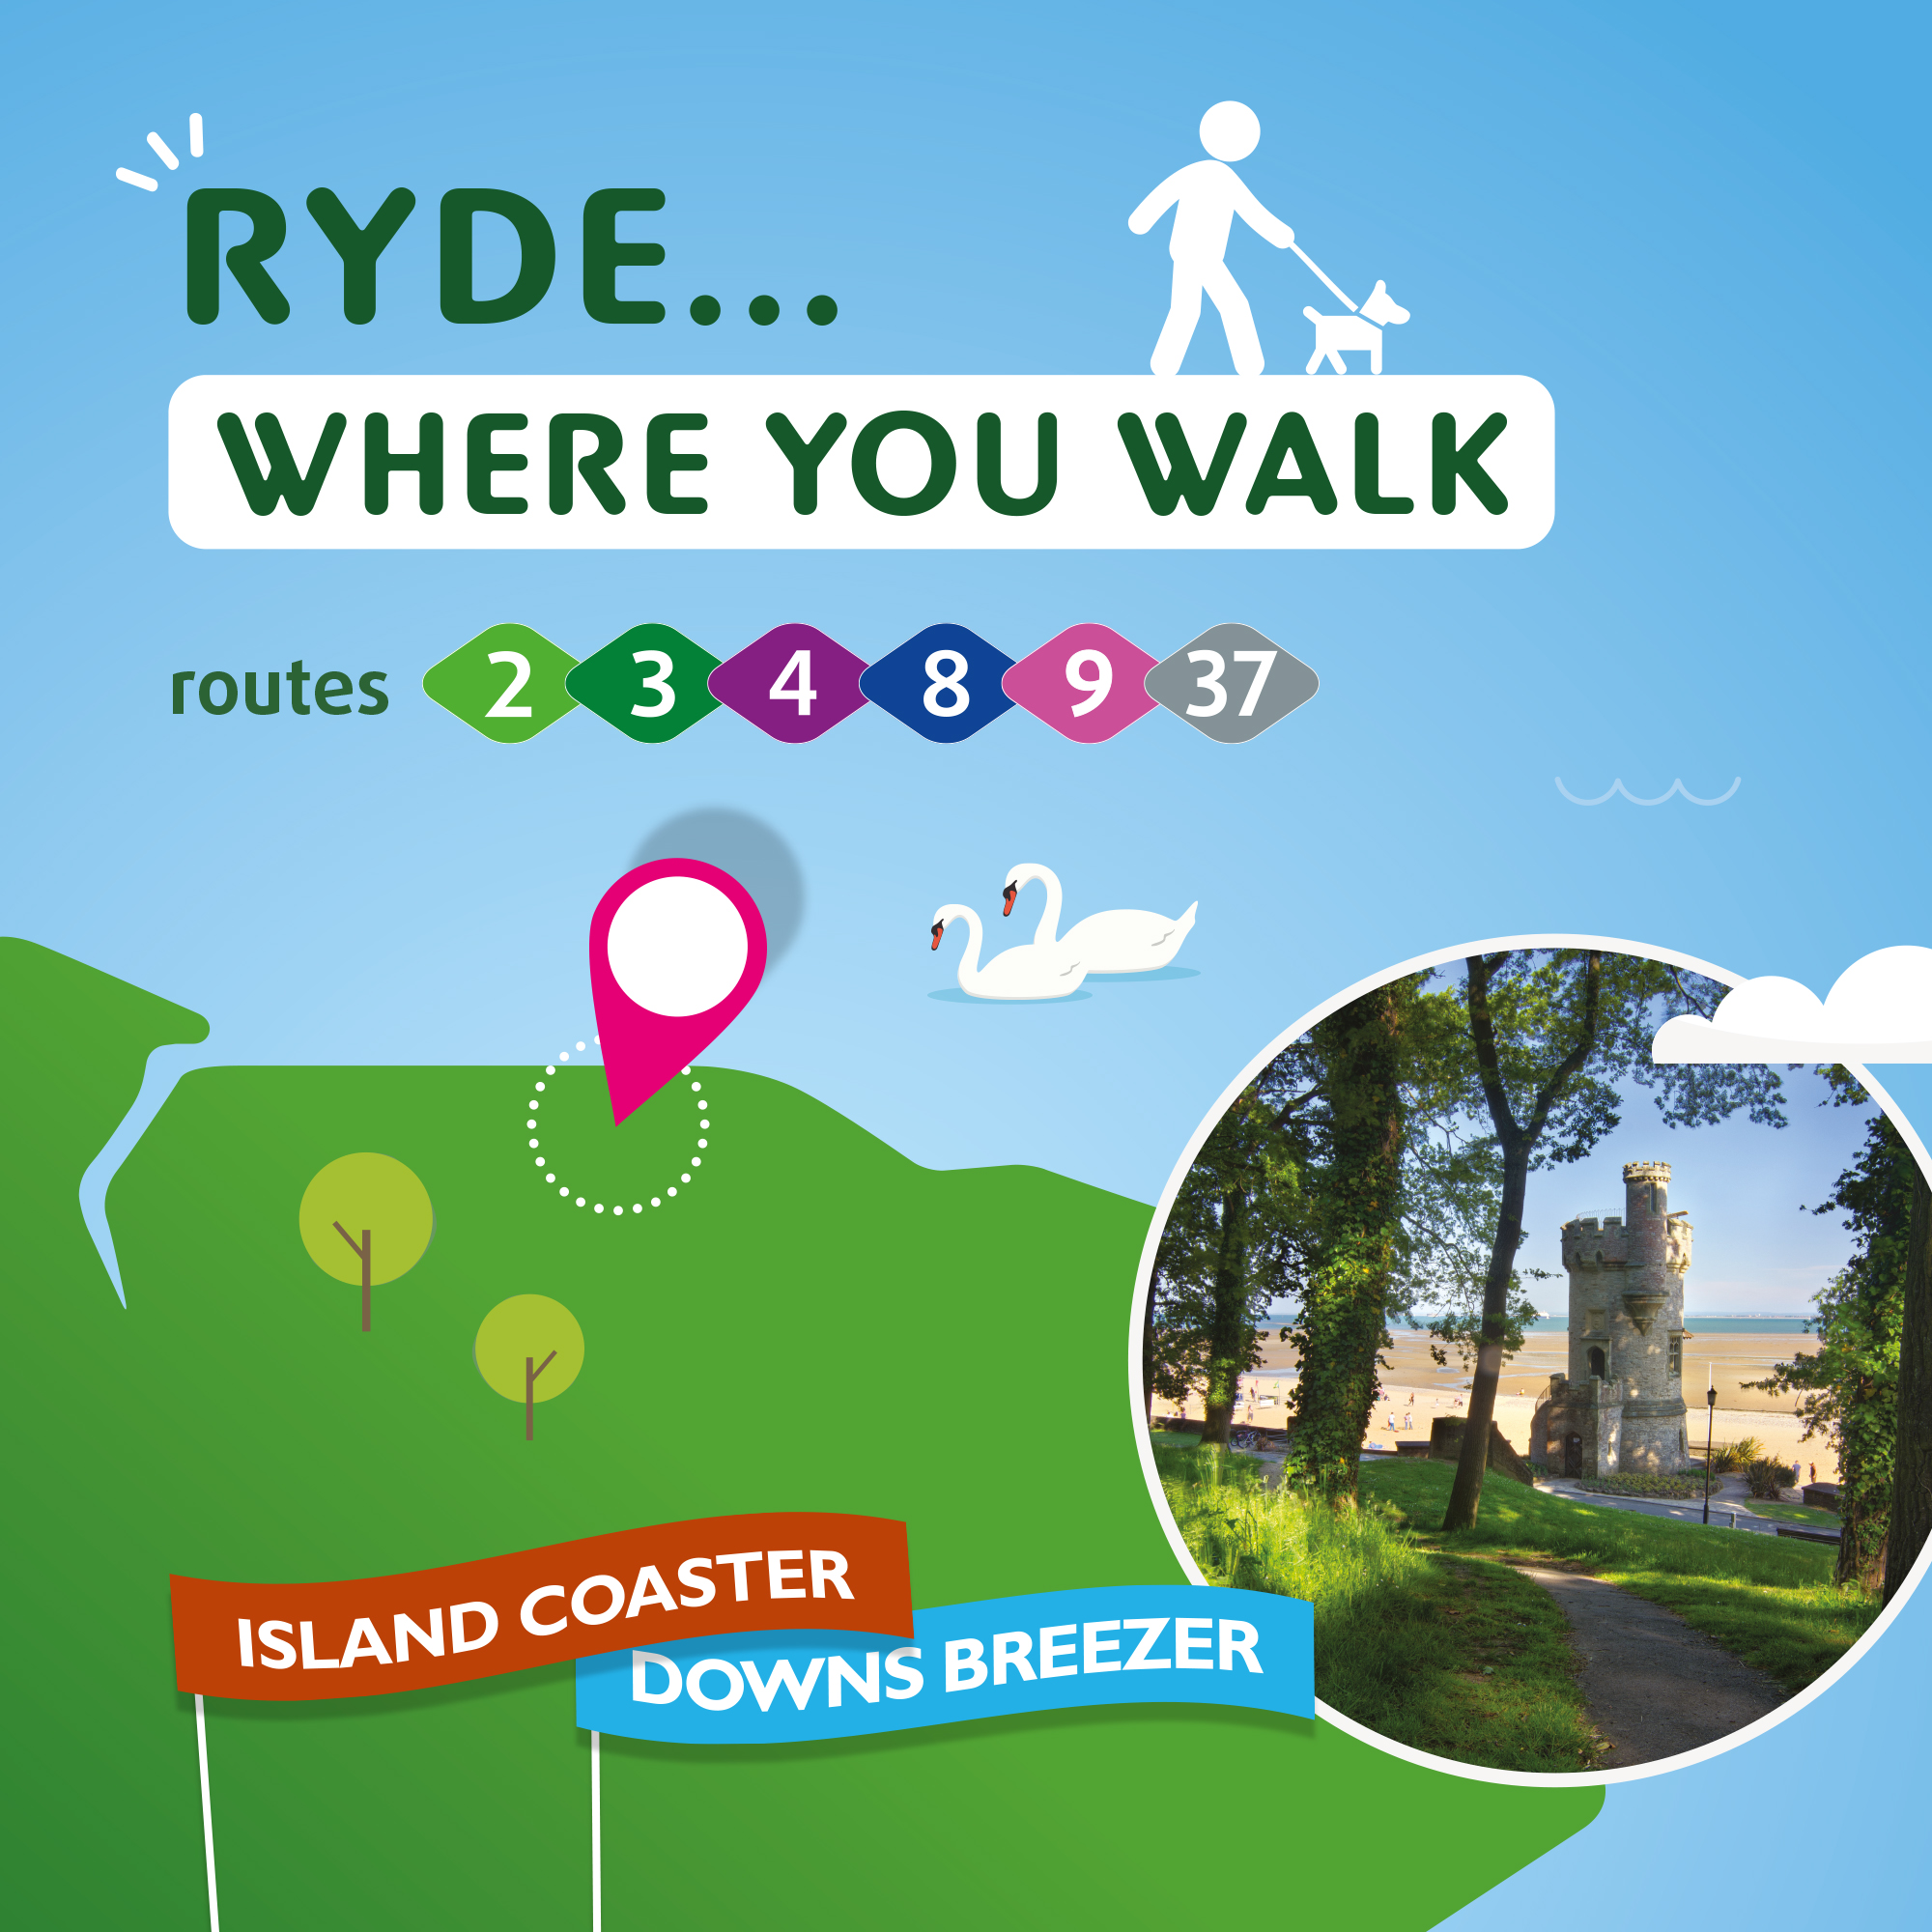 Illustration of Ryde where you can walk